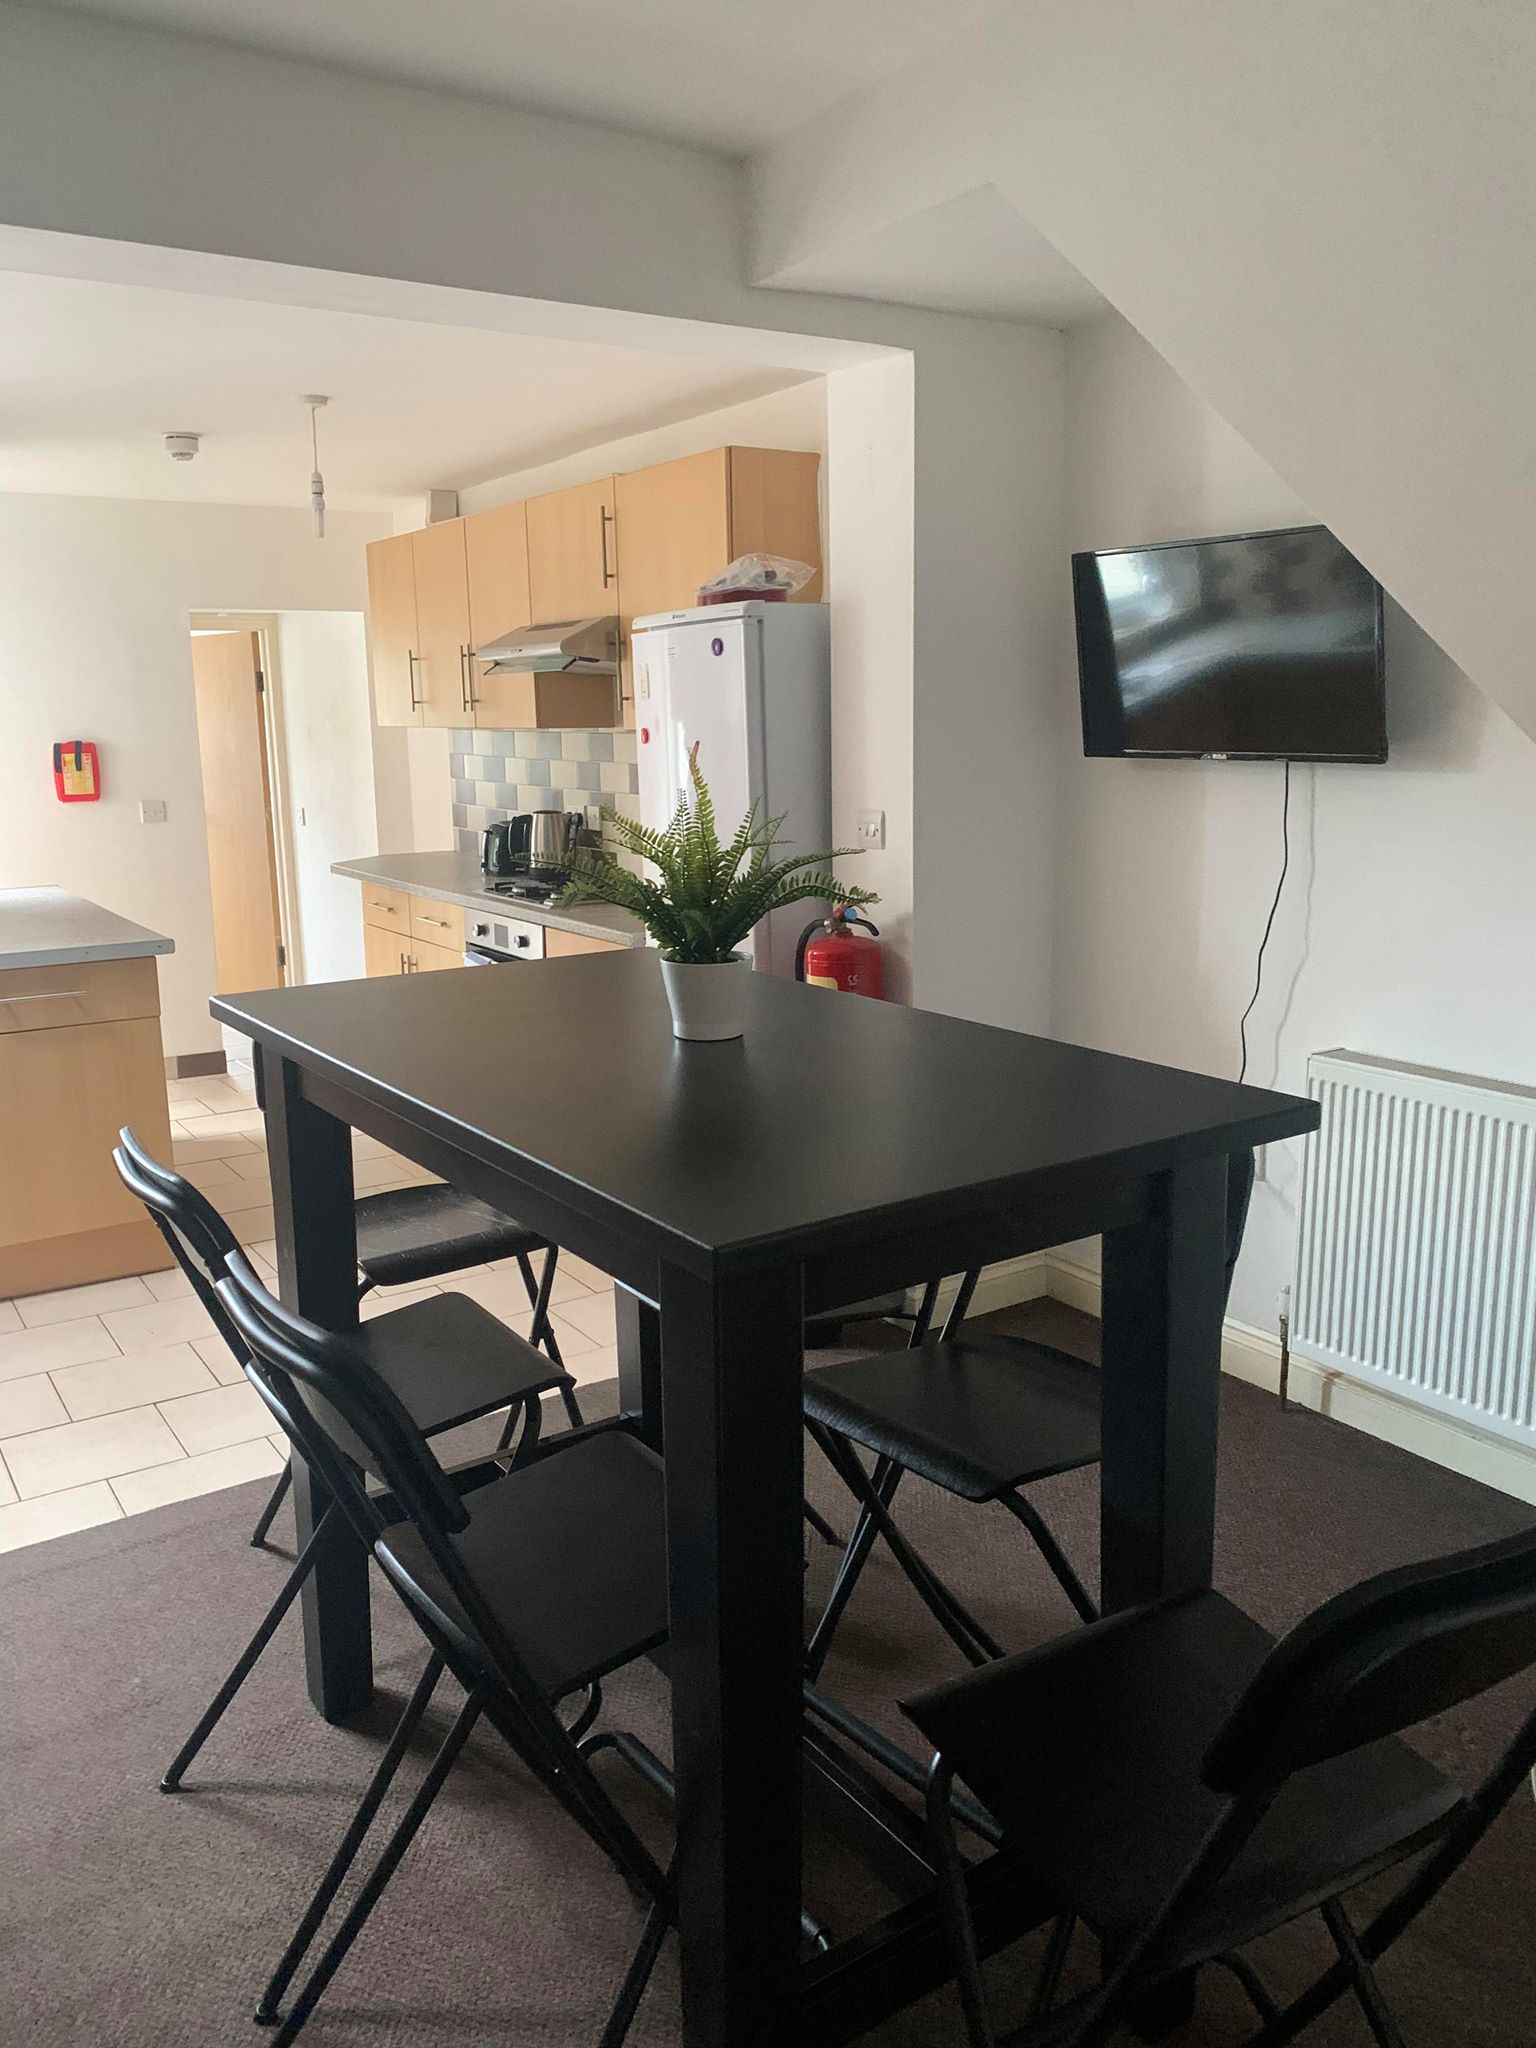 5 rooms in Reading, Reading, RG15PZ RoomsLocal image